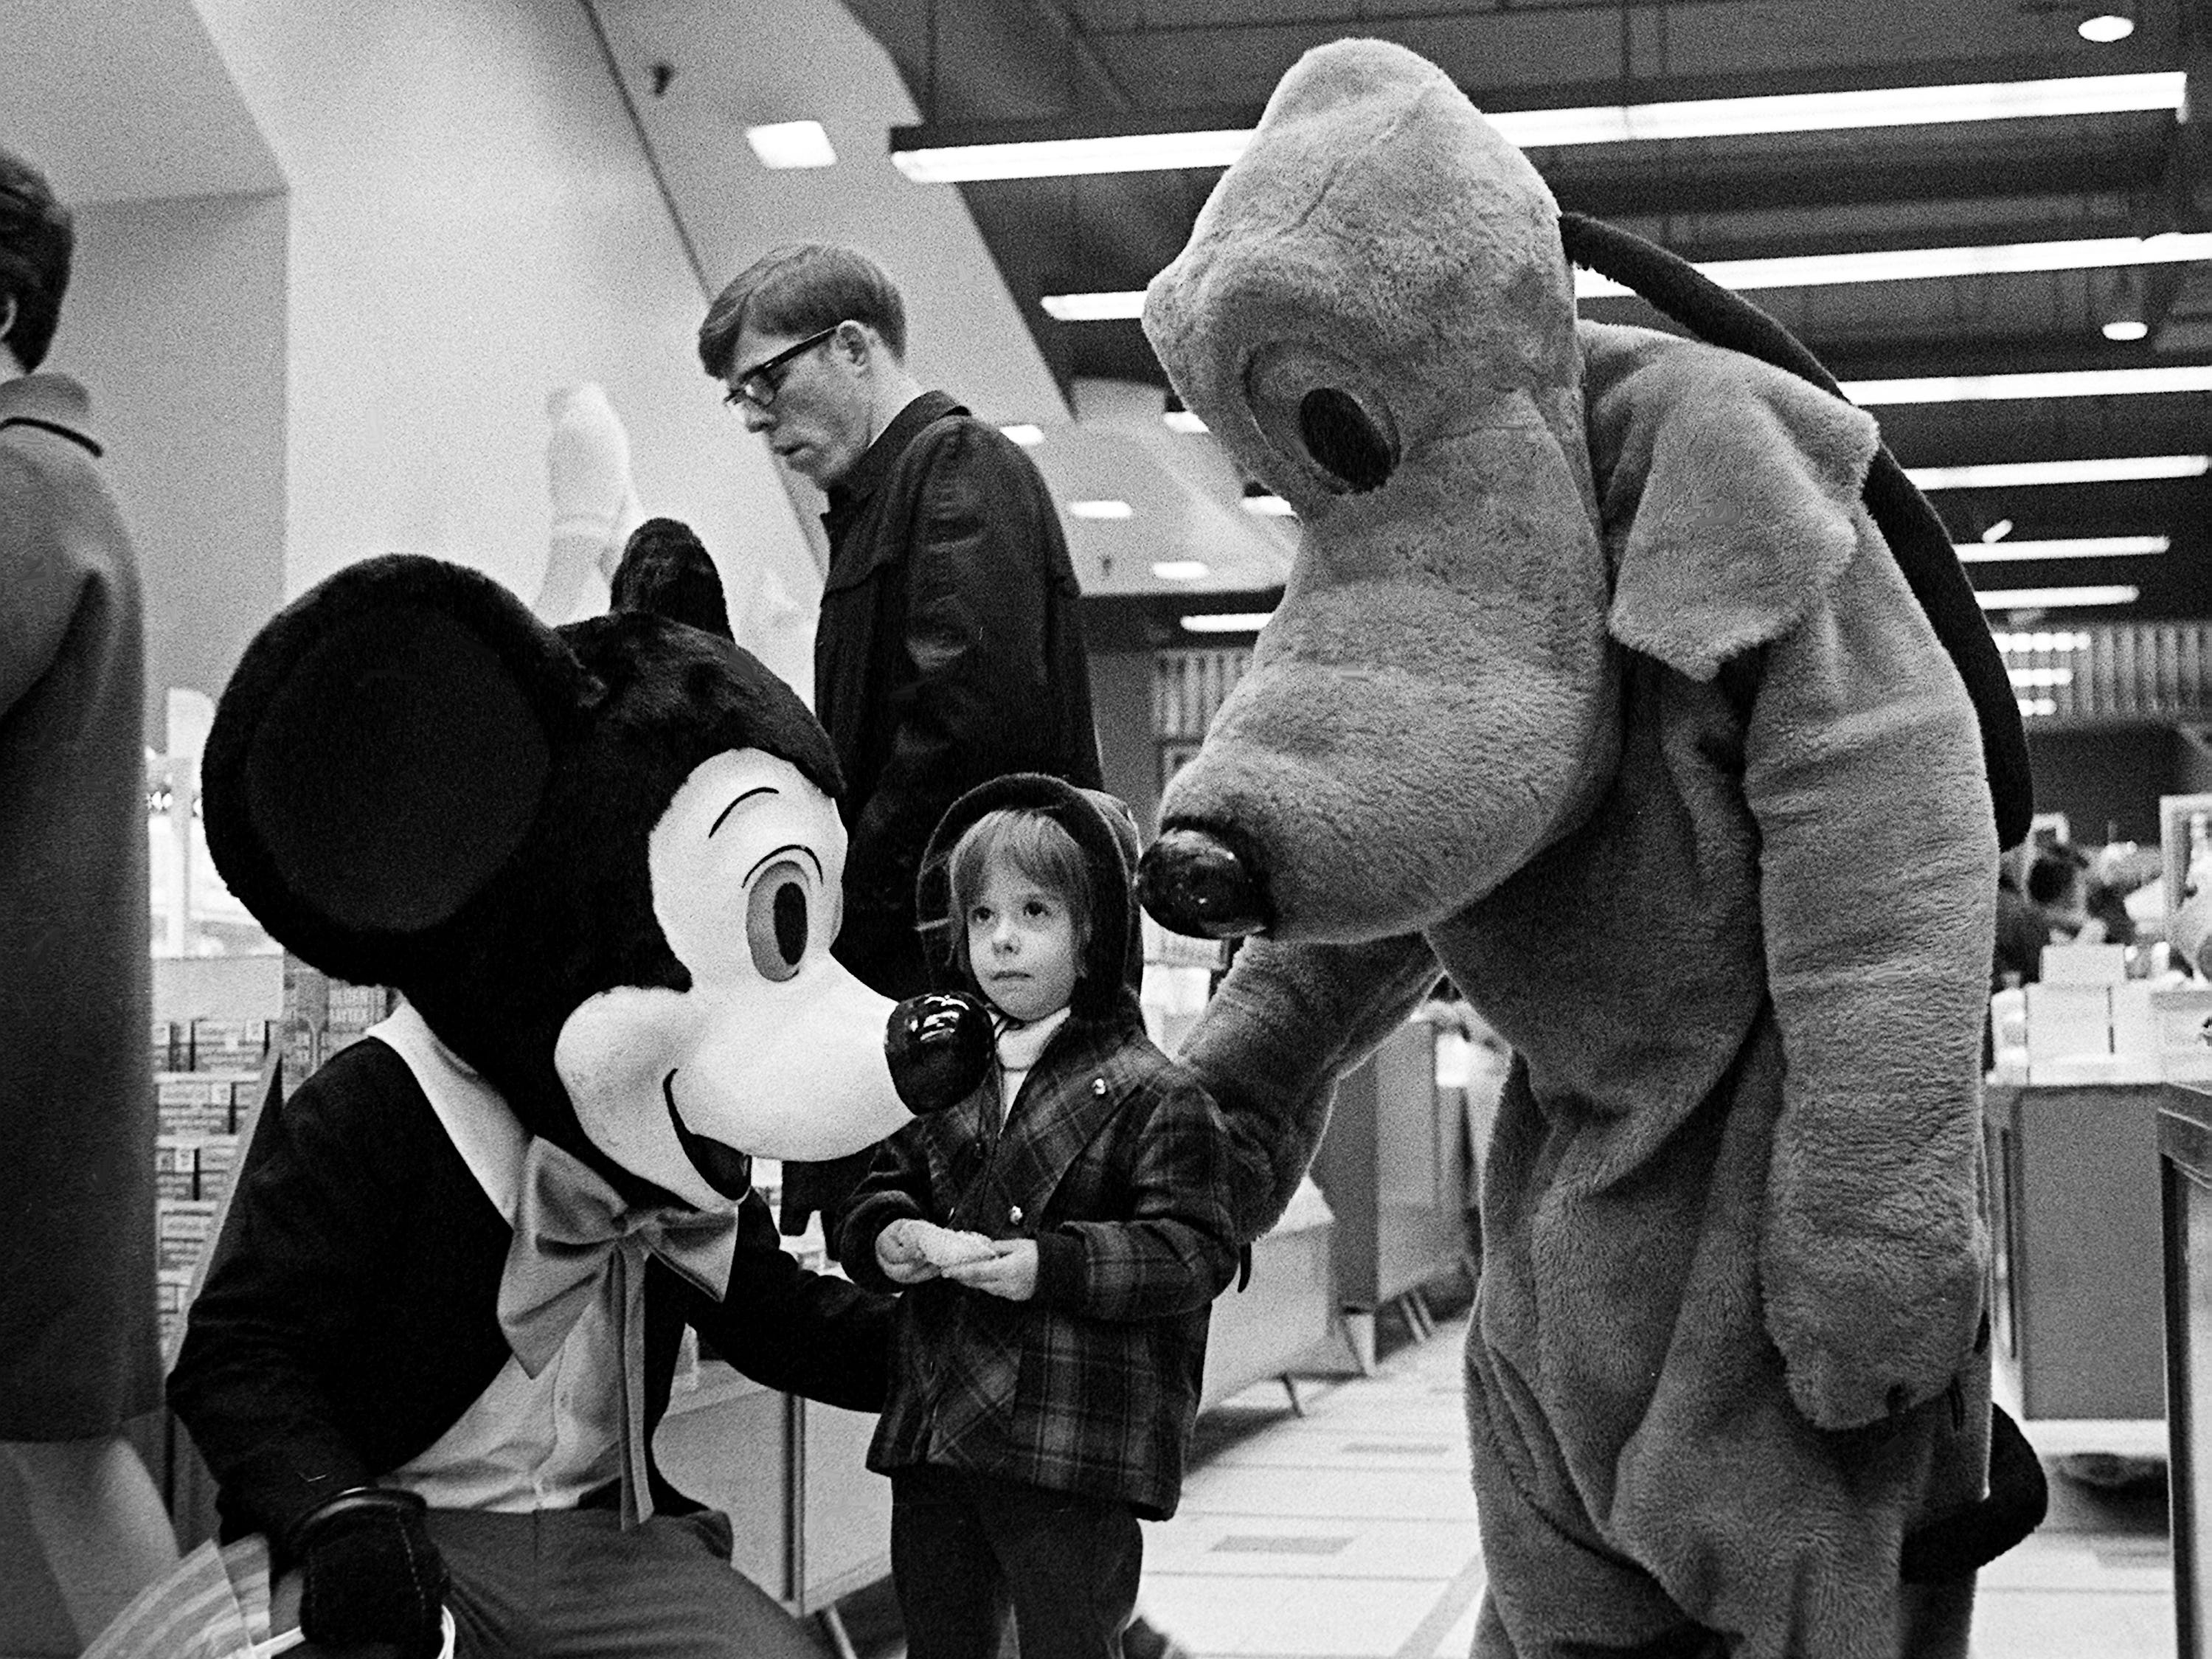 Tiny Nicole Jelesoff, 4, stares in amazement as she is confronted by Mickey Mouse and Pluto at Harveys in downtown Nashville Dec. 16, 1968. The popular Disney cartoon characters, brought to life by Glenn Gailbreath, 18, and Junior Warren, 17, greet young and old shoppers each day in the store. Nicole is the daughter of Mrs. A.D. Jelesoff of Capitol Towers Apartments.